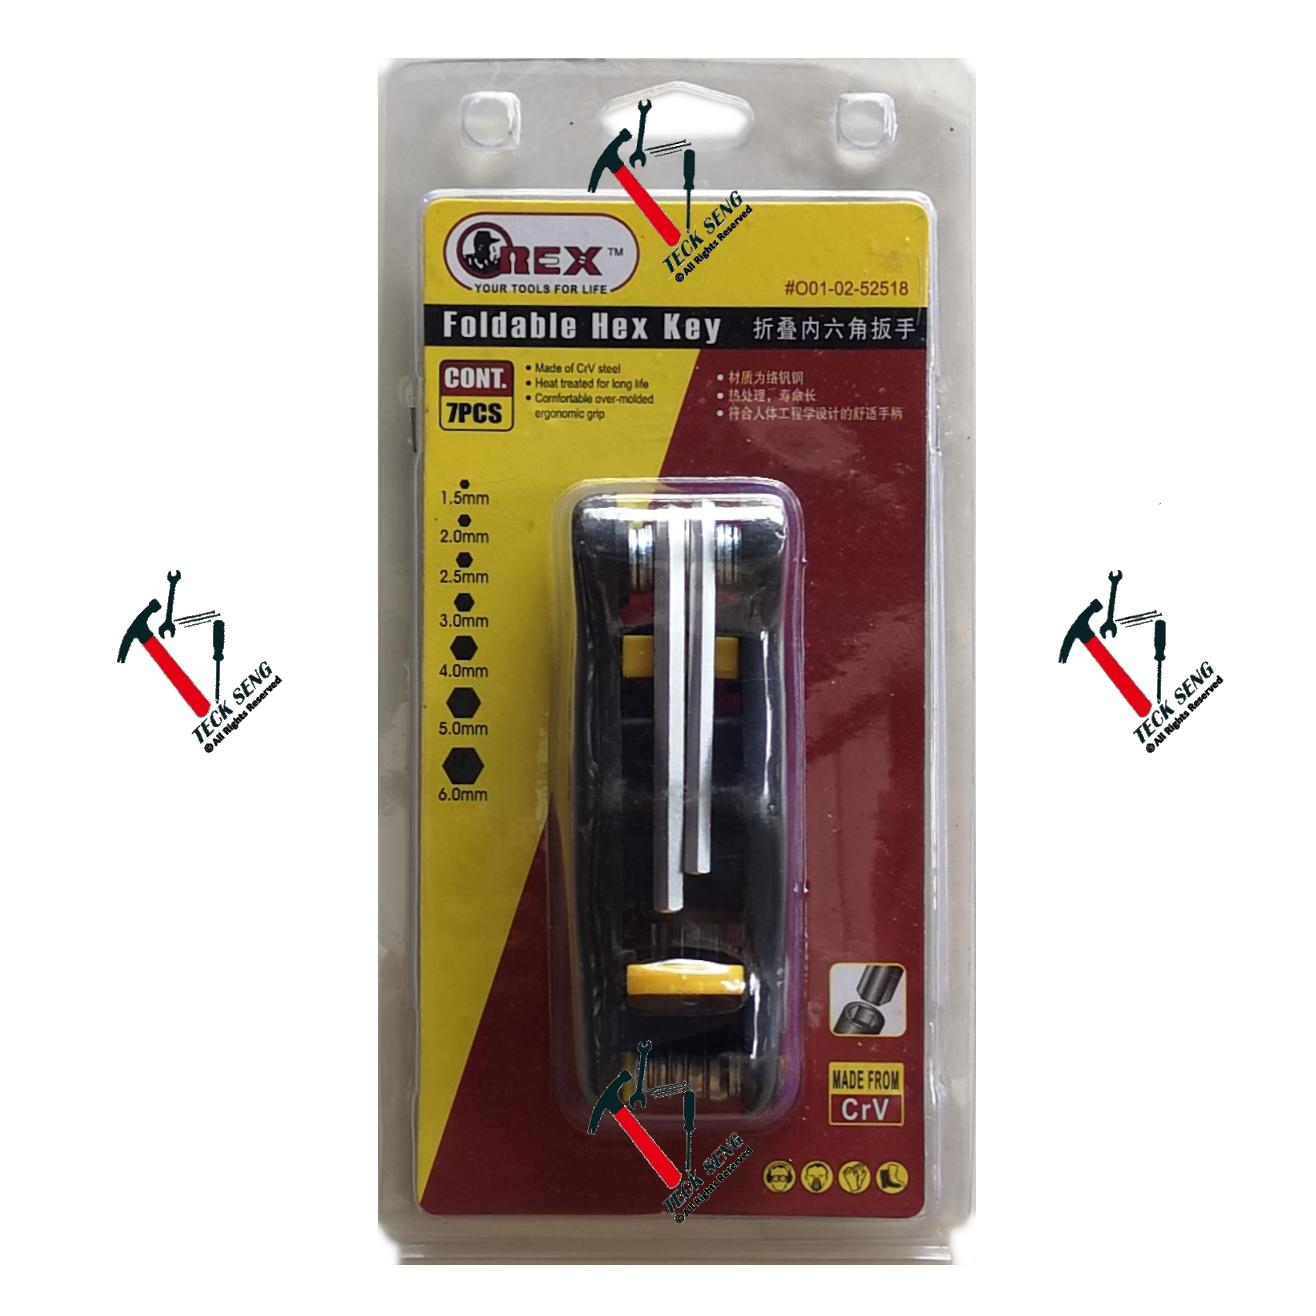 OREX Foldable Hex Key